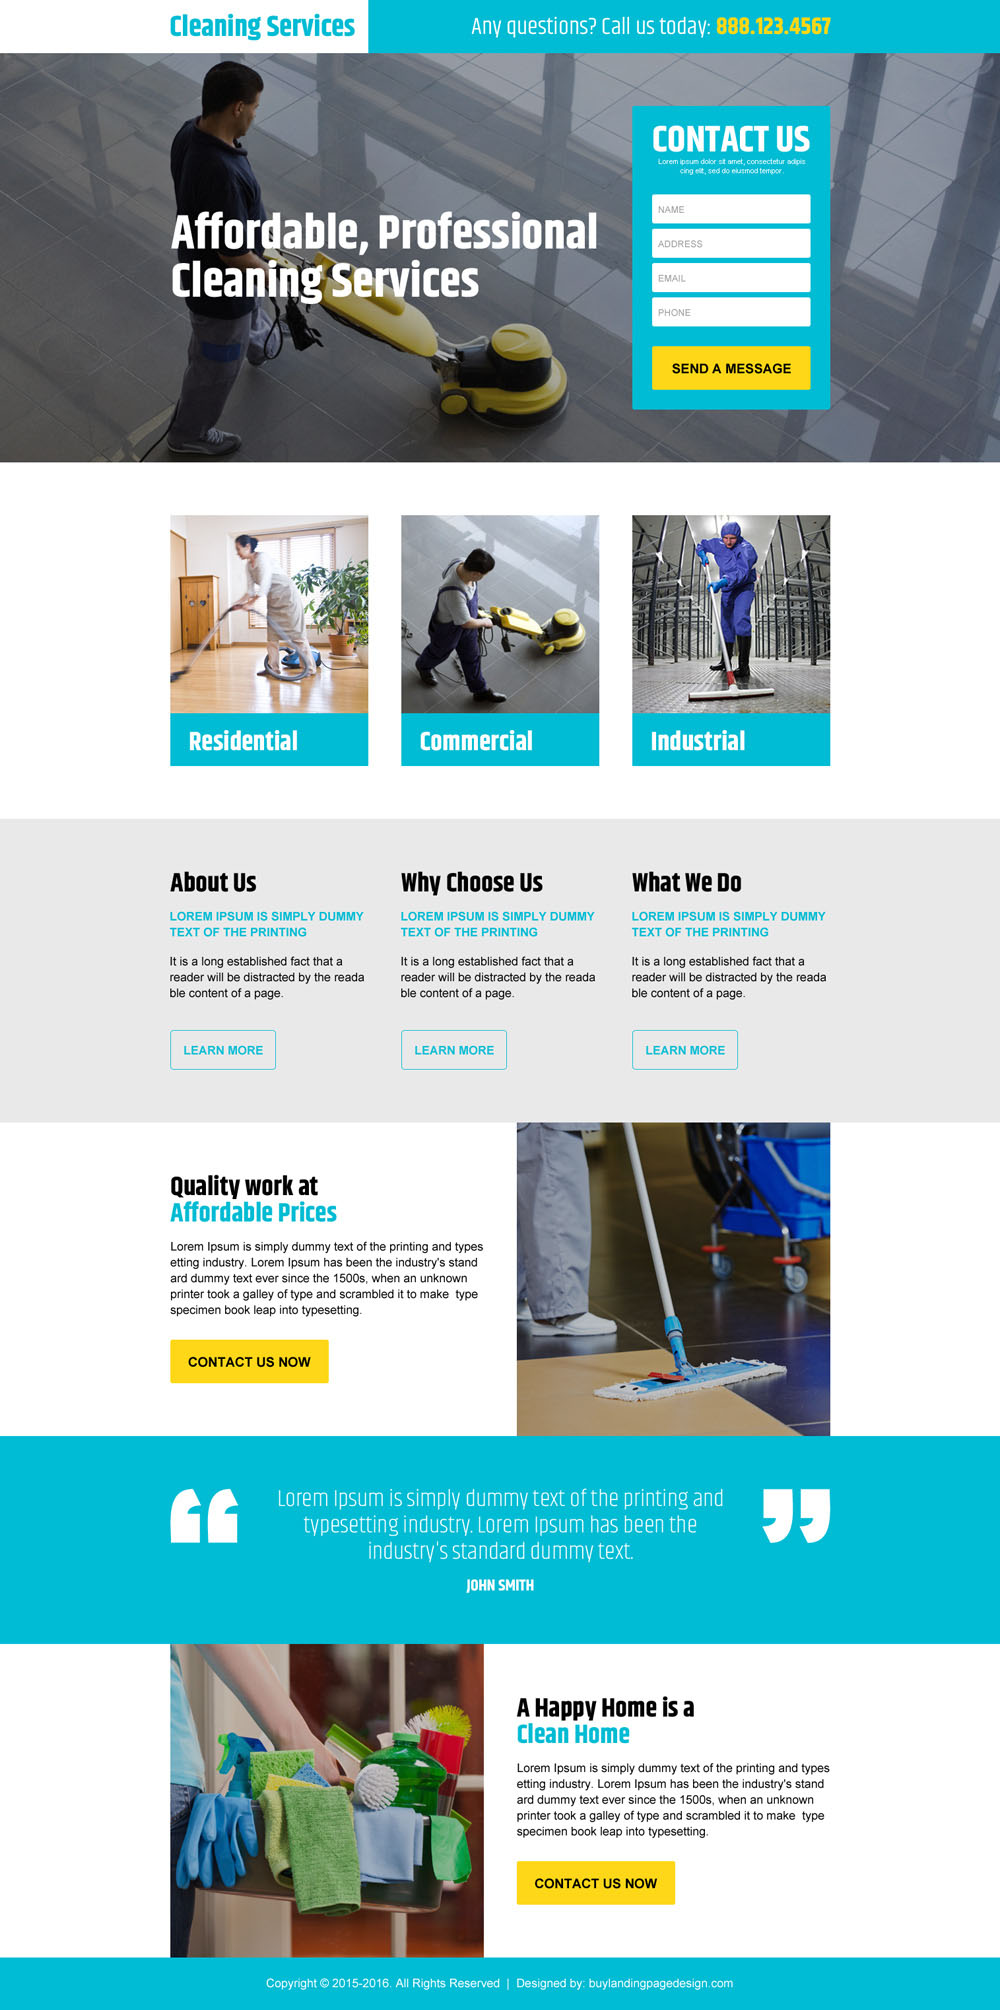 professional-cleaning-service-lead-generation-high-converting-landing-page-design-001